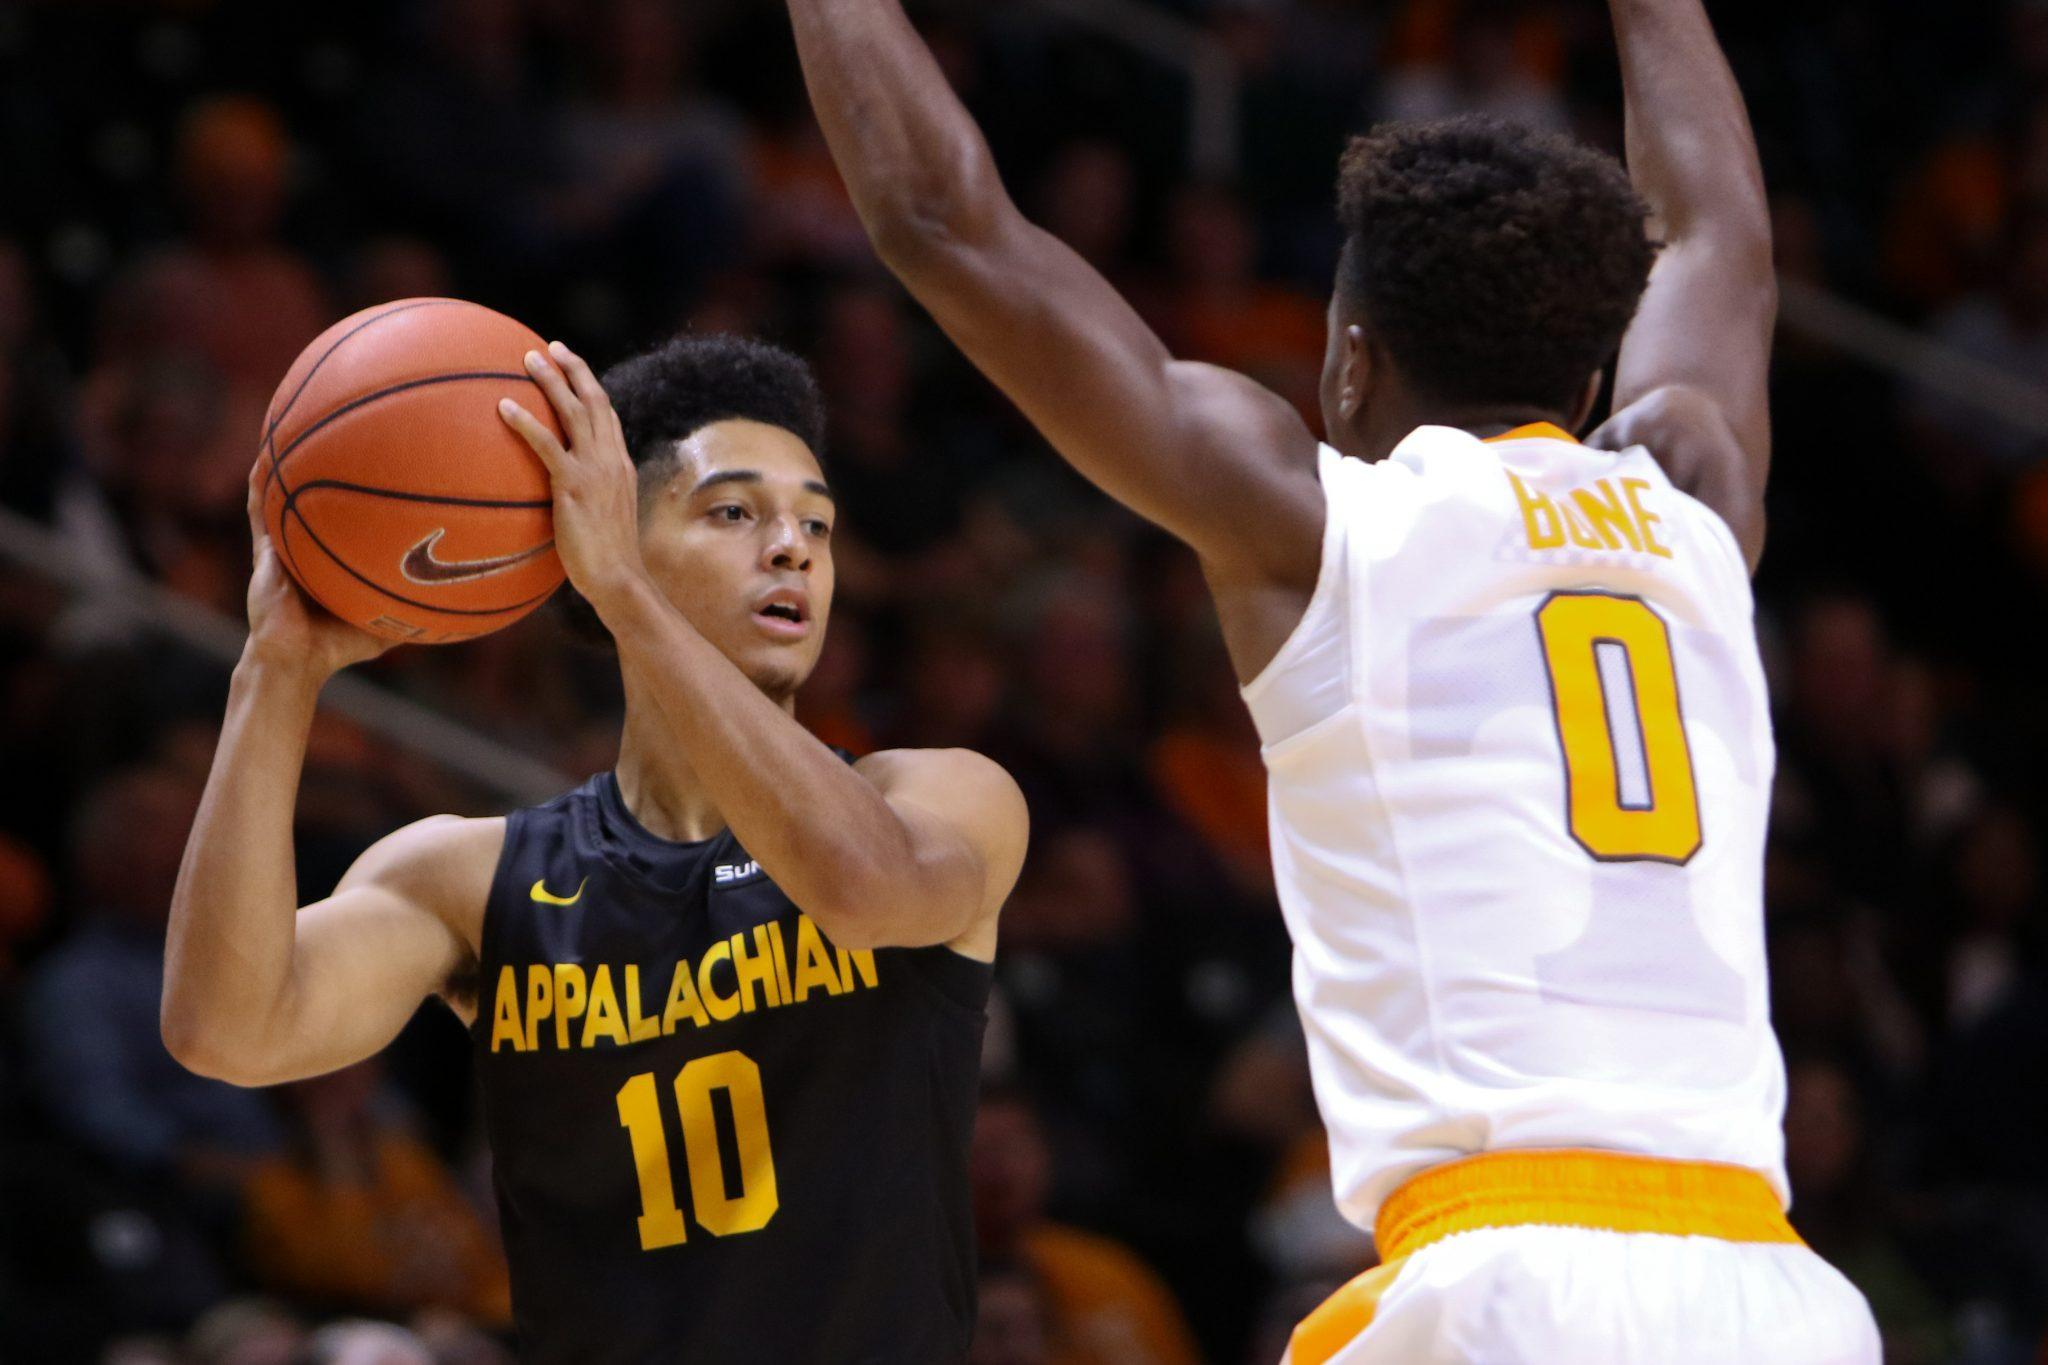 Freshman+Patrick+Good+tied+for+a+game+high+21-points+in+the+Mountaineers+loss+to+Tennessee%0APhoto+courtesy%3A+Randy+Sartin%2FApp+State+Athletics